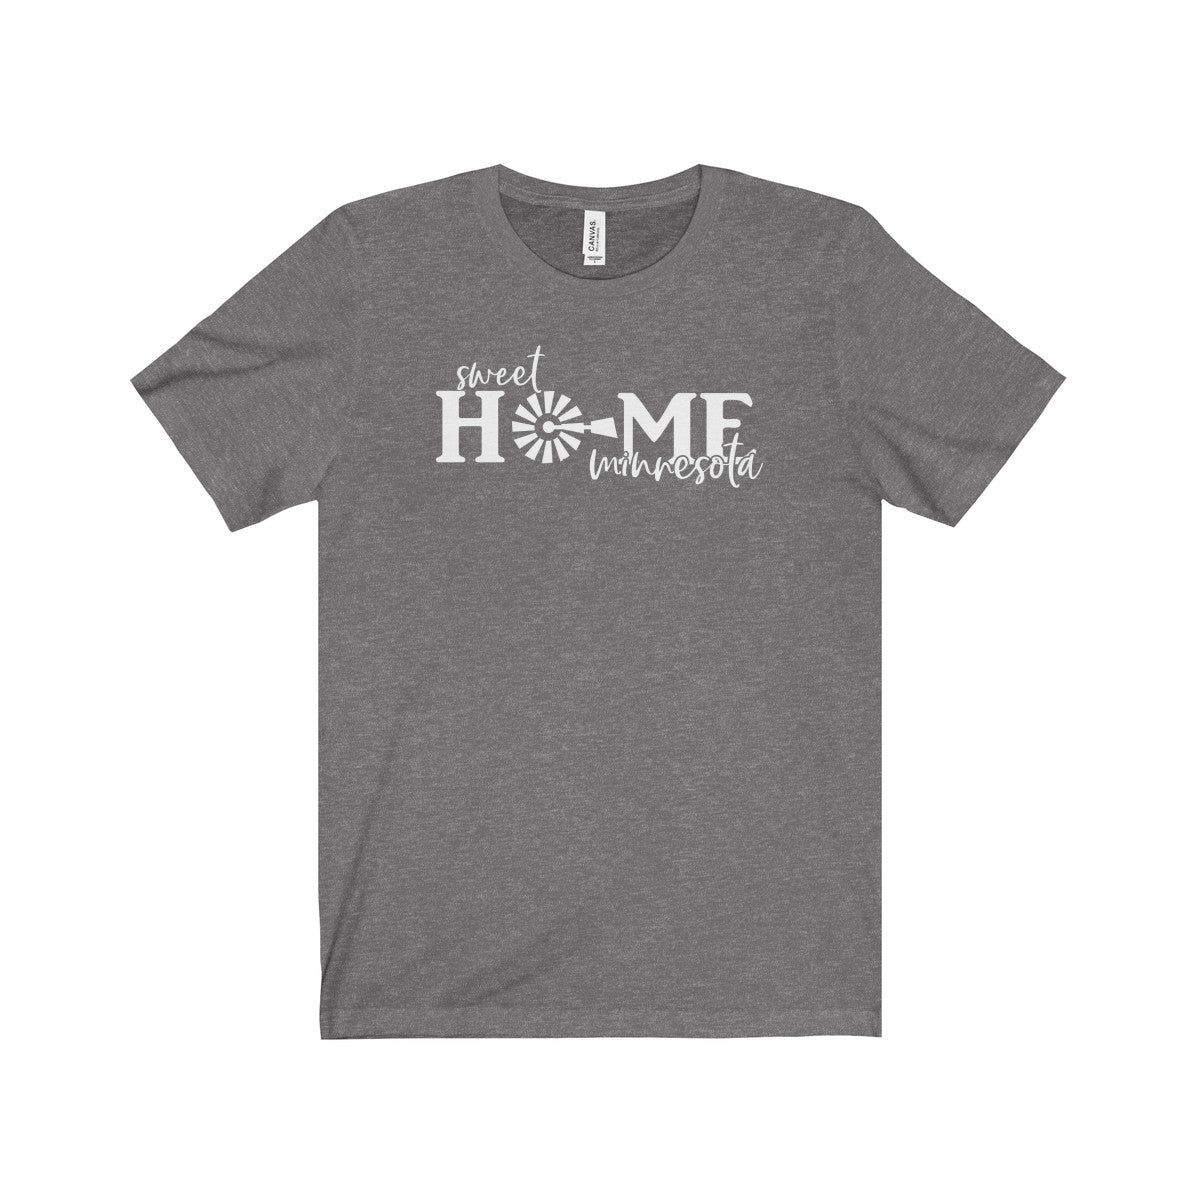 Sweet Home Minnesota Unisex Jersey Short Sleeve Tee